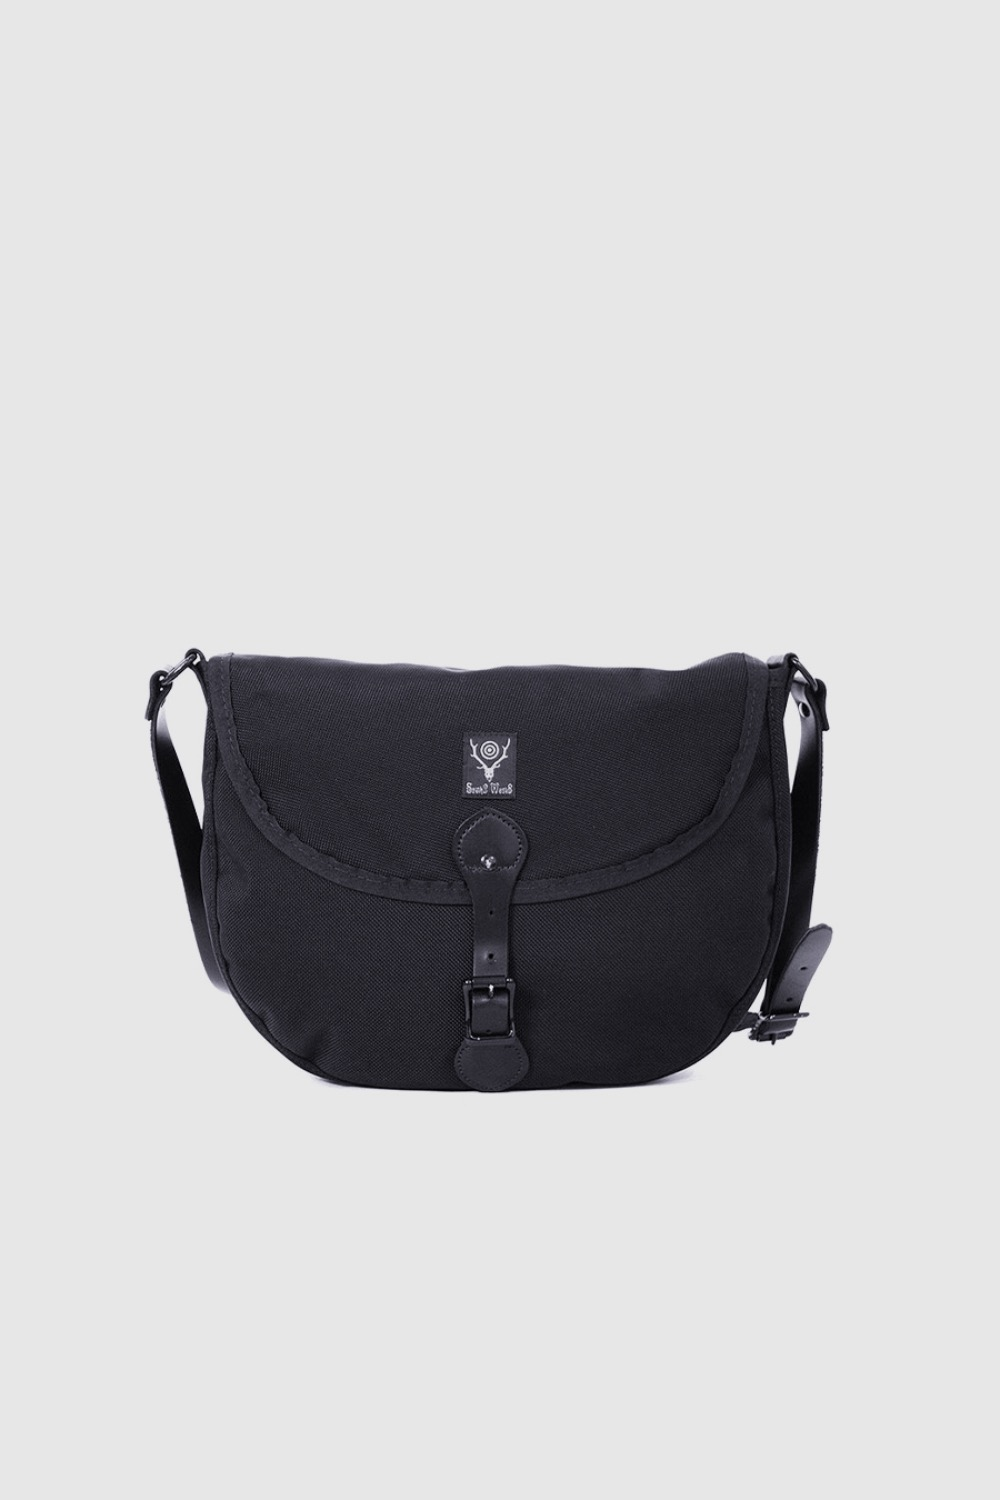 LARGE BINOCULAR BAG BLACK BALISTIC